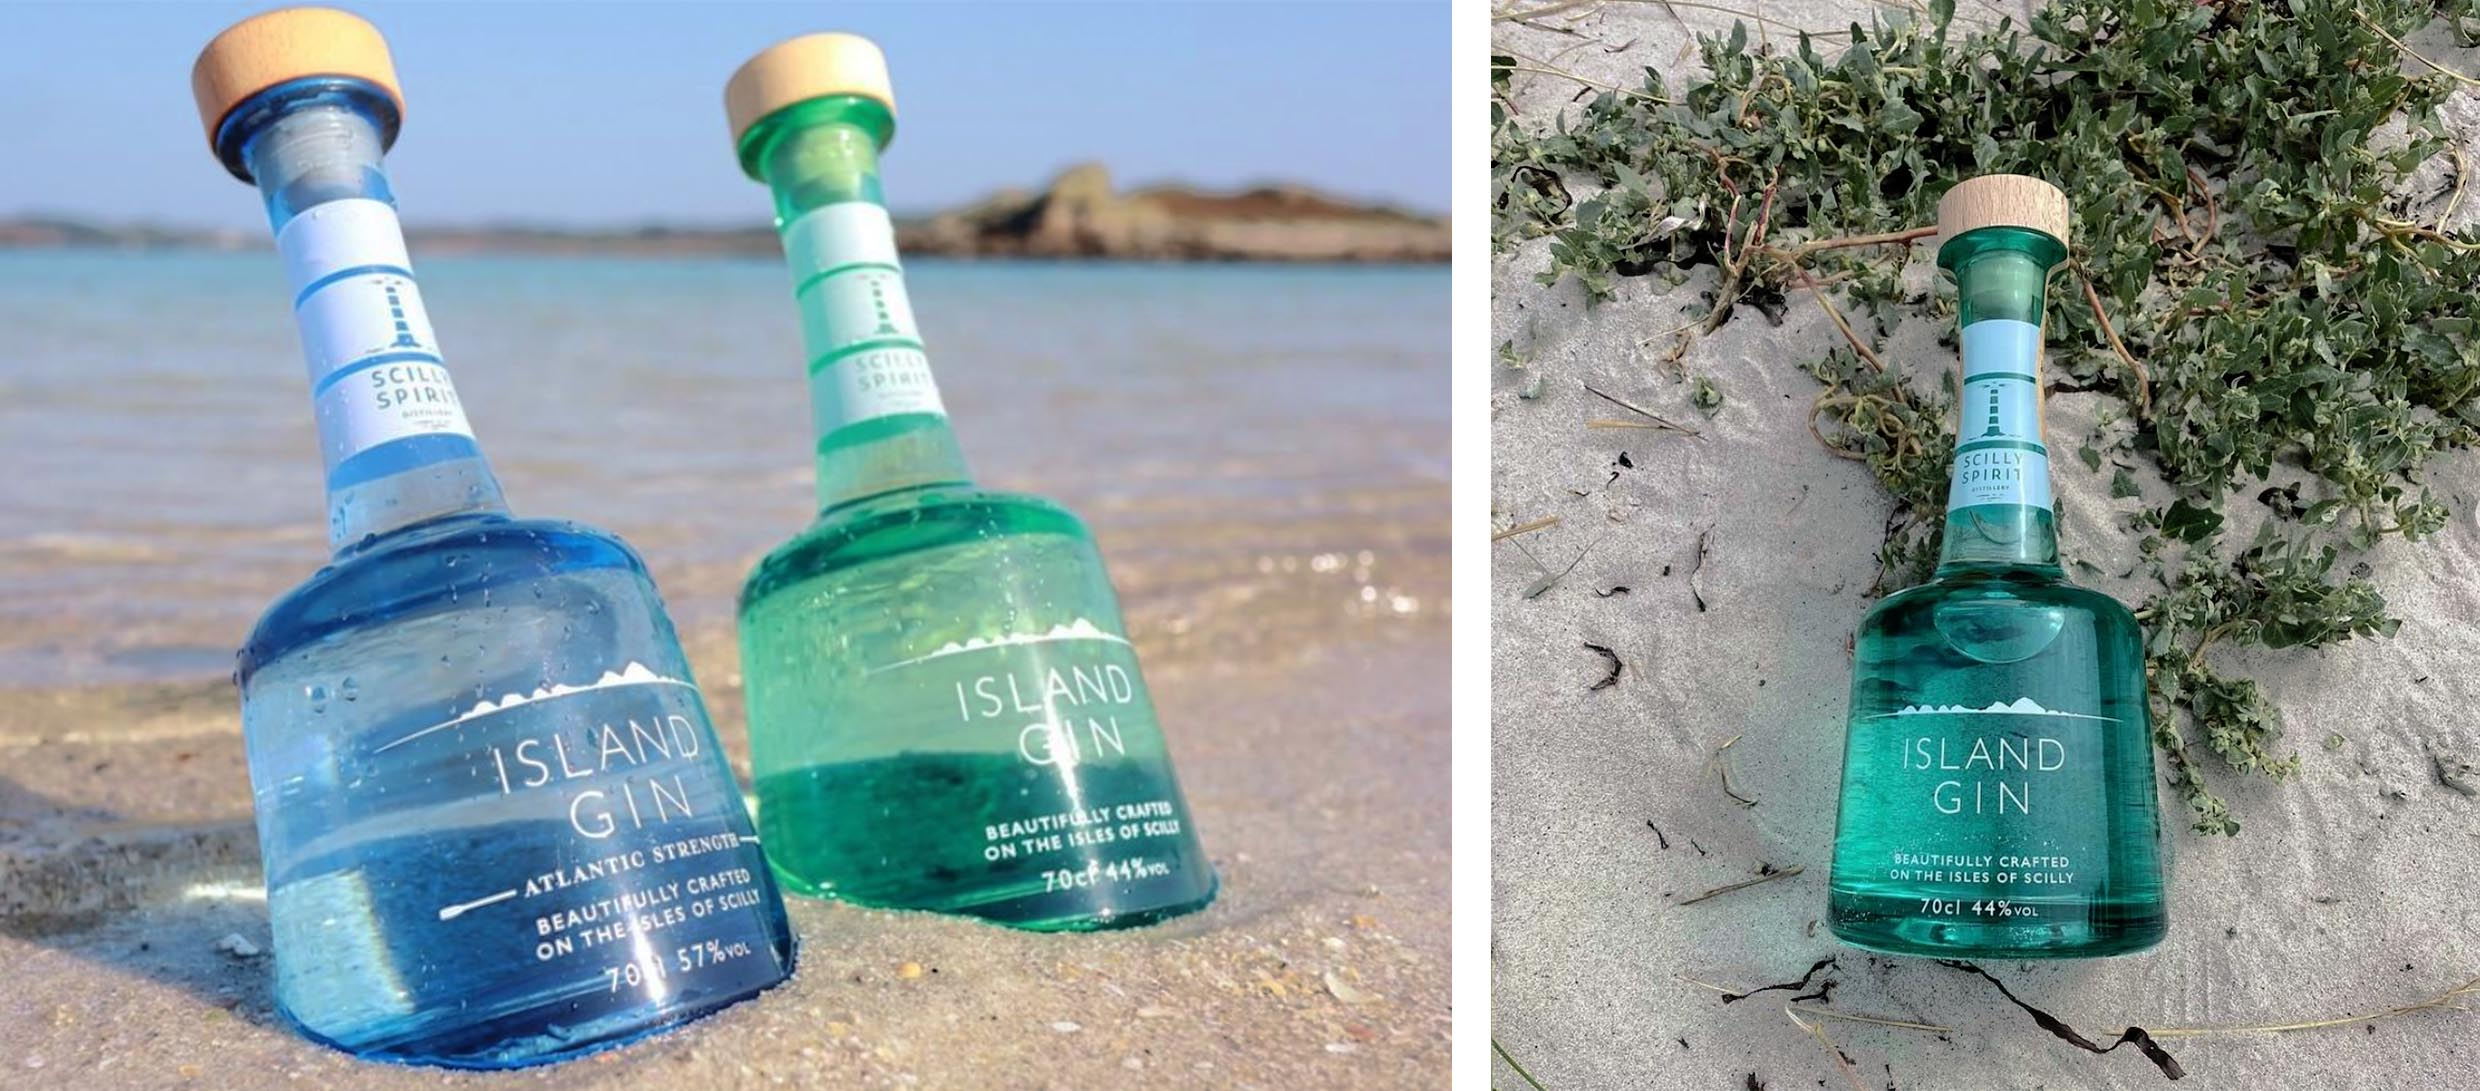 Isle of Scilly Gin bottles